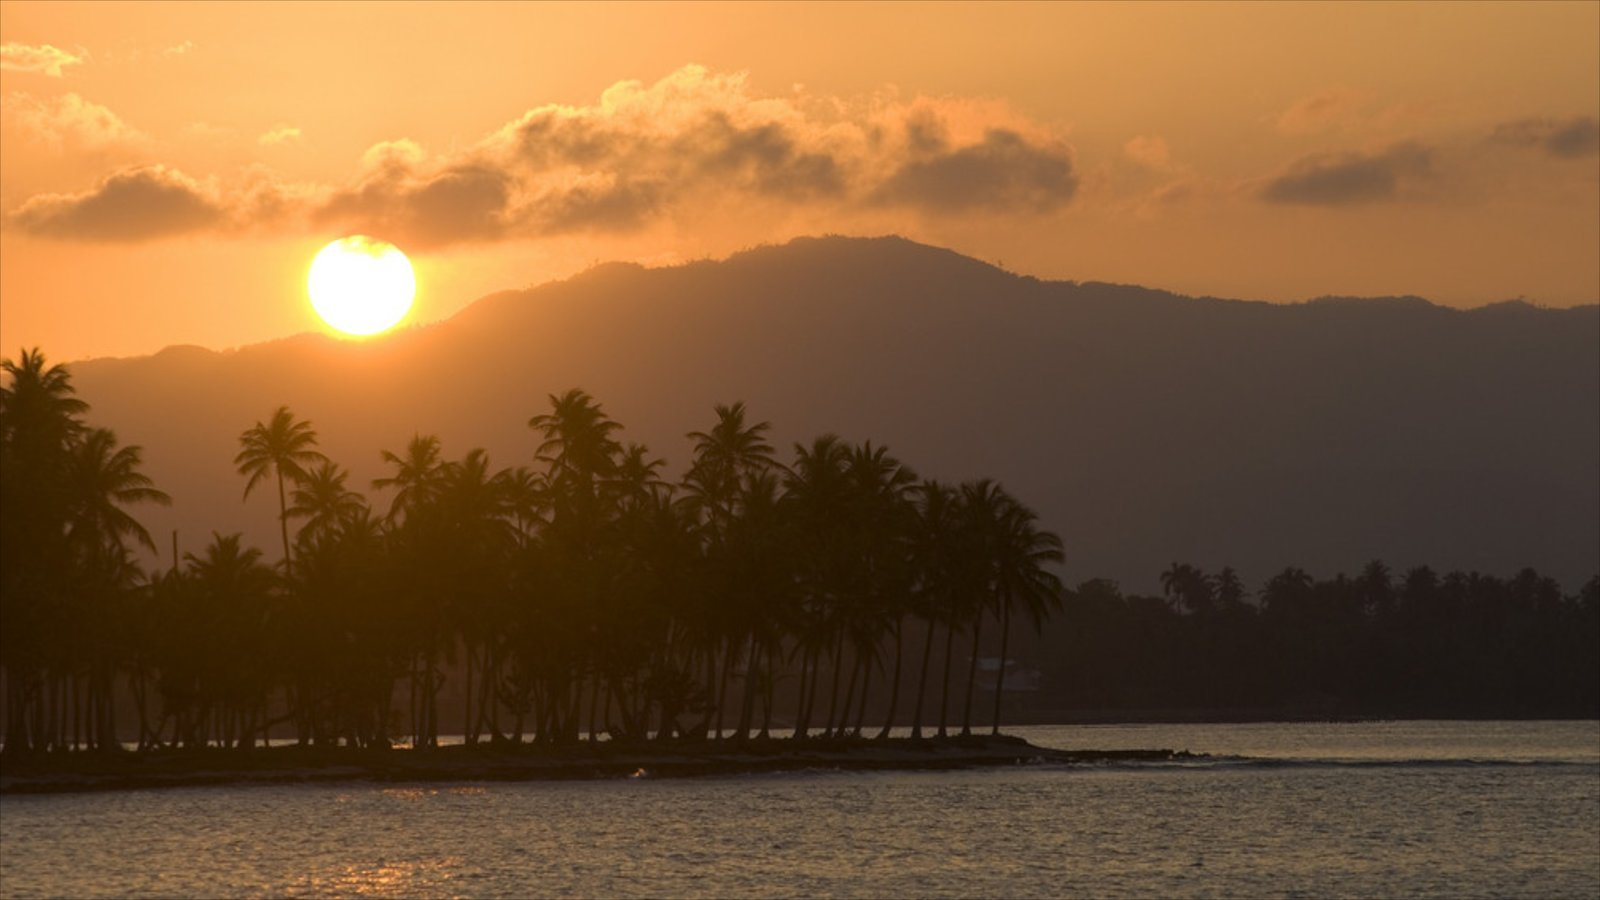 Samana which includes a sunset, general coastal views and tropical scenes